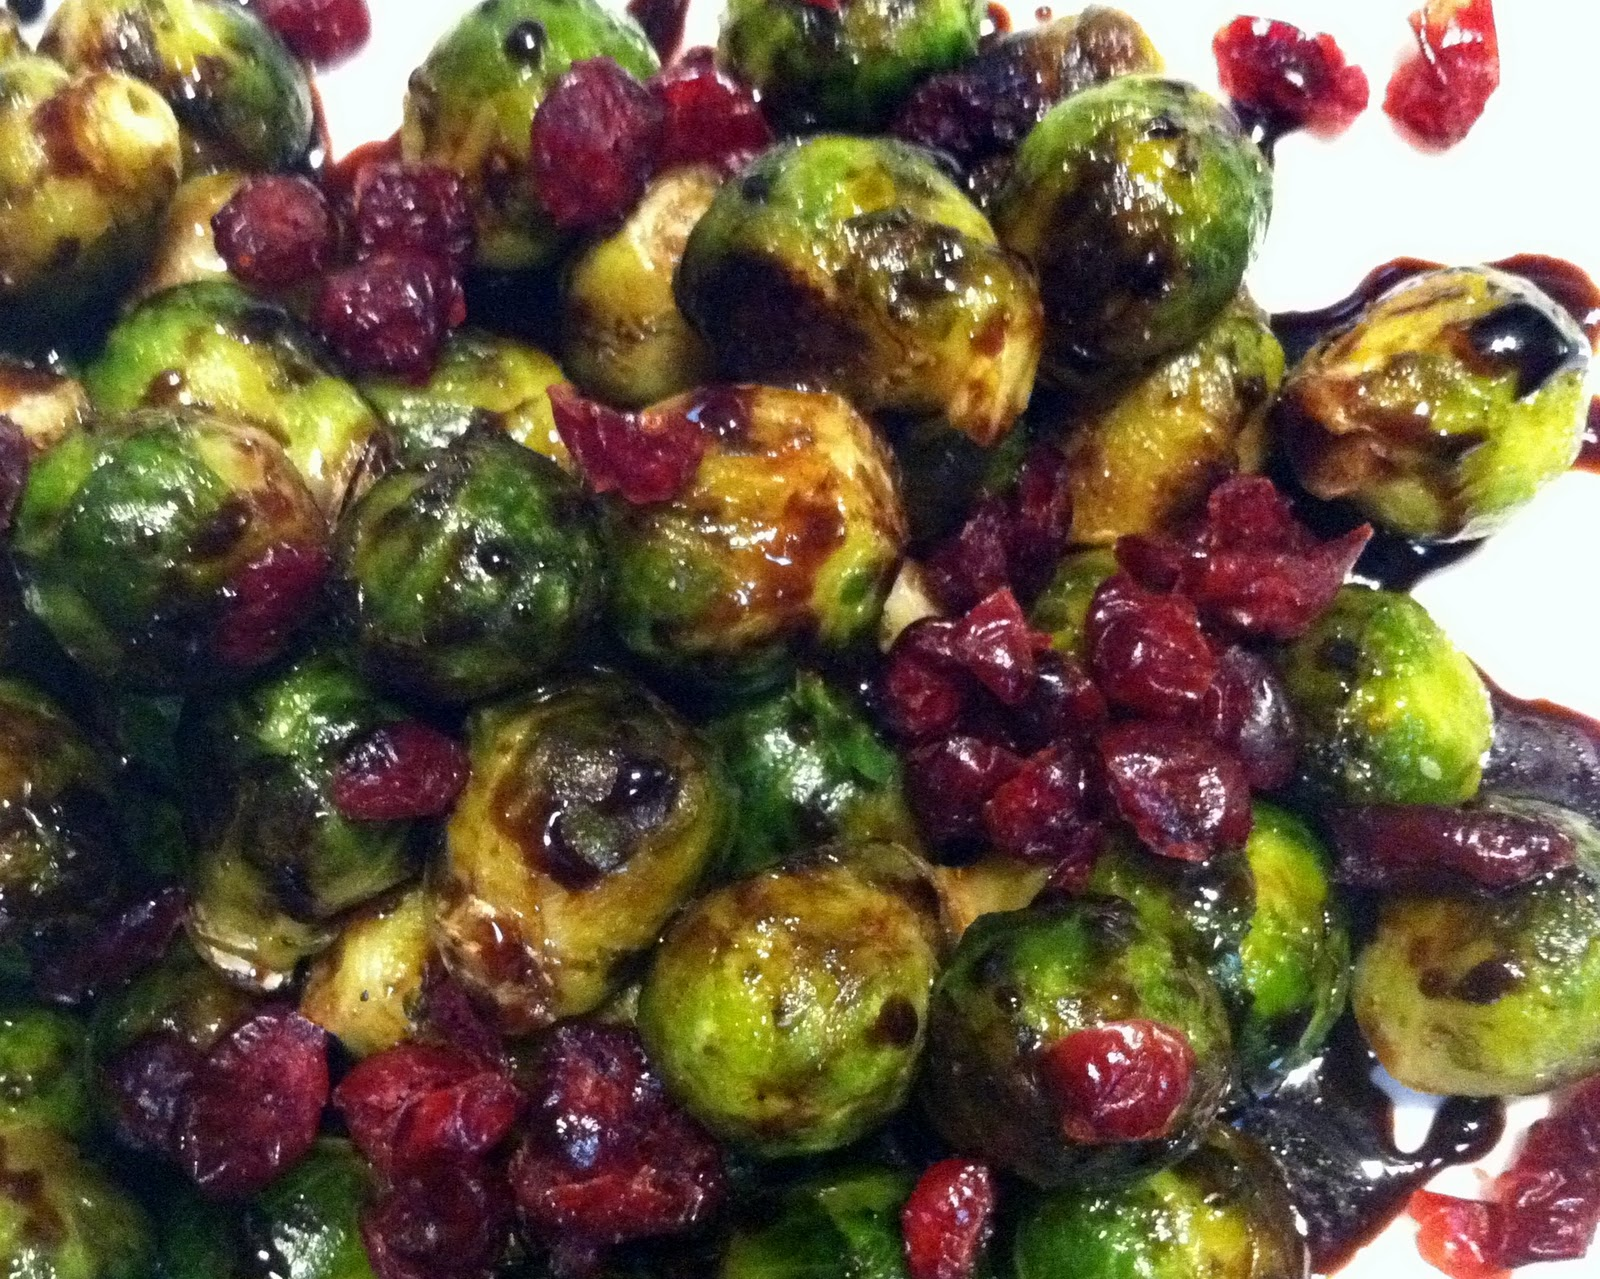 Brussels Sprouts with Balsamic & Cranberries | One Couple's Kitchen